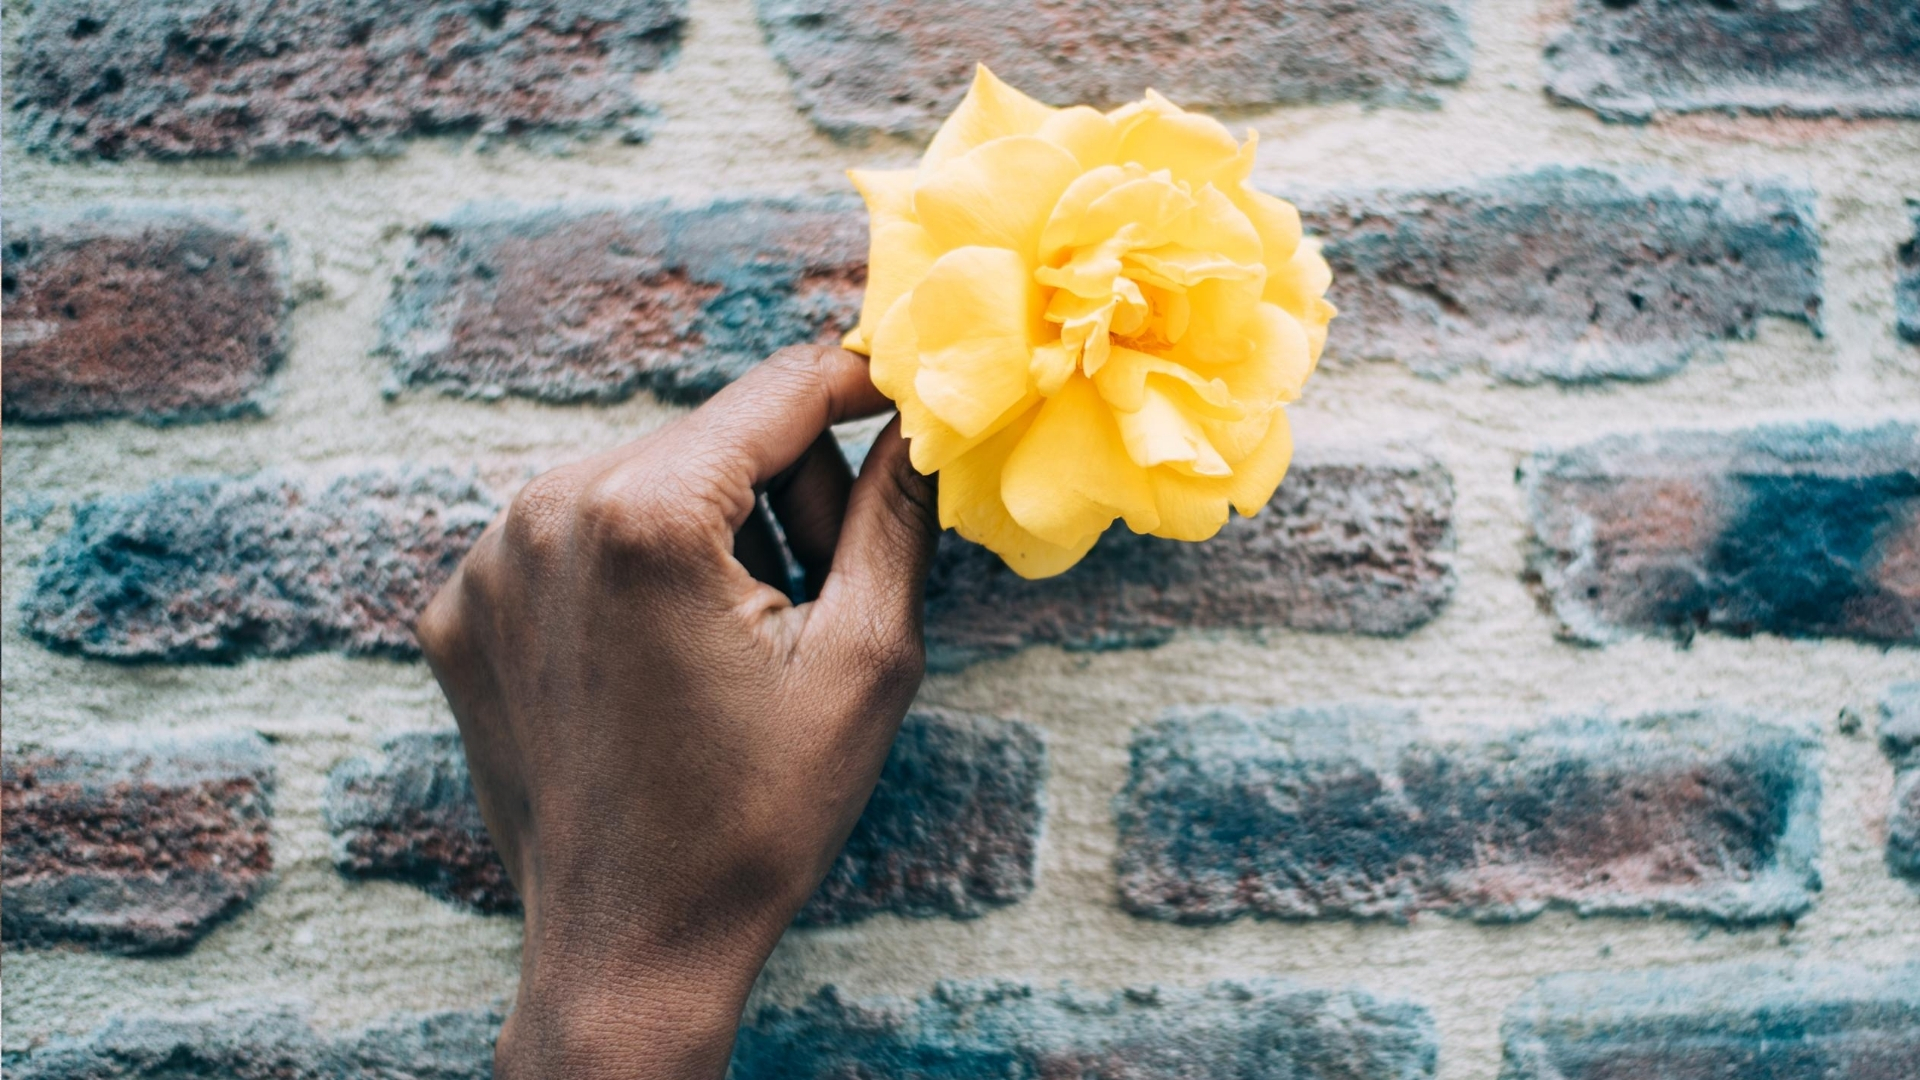 I asked God to take my life: Woman's hand holding a yellow rose against a brick wall